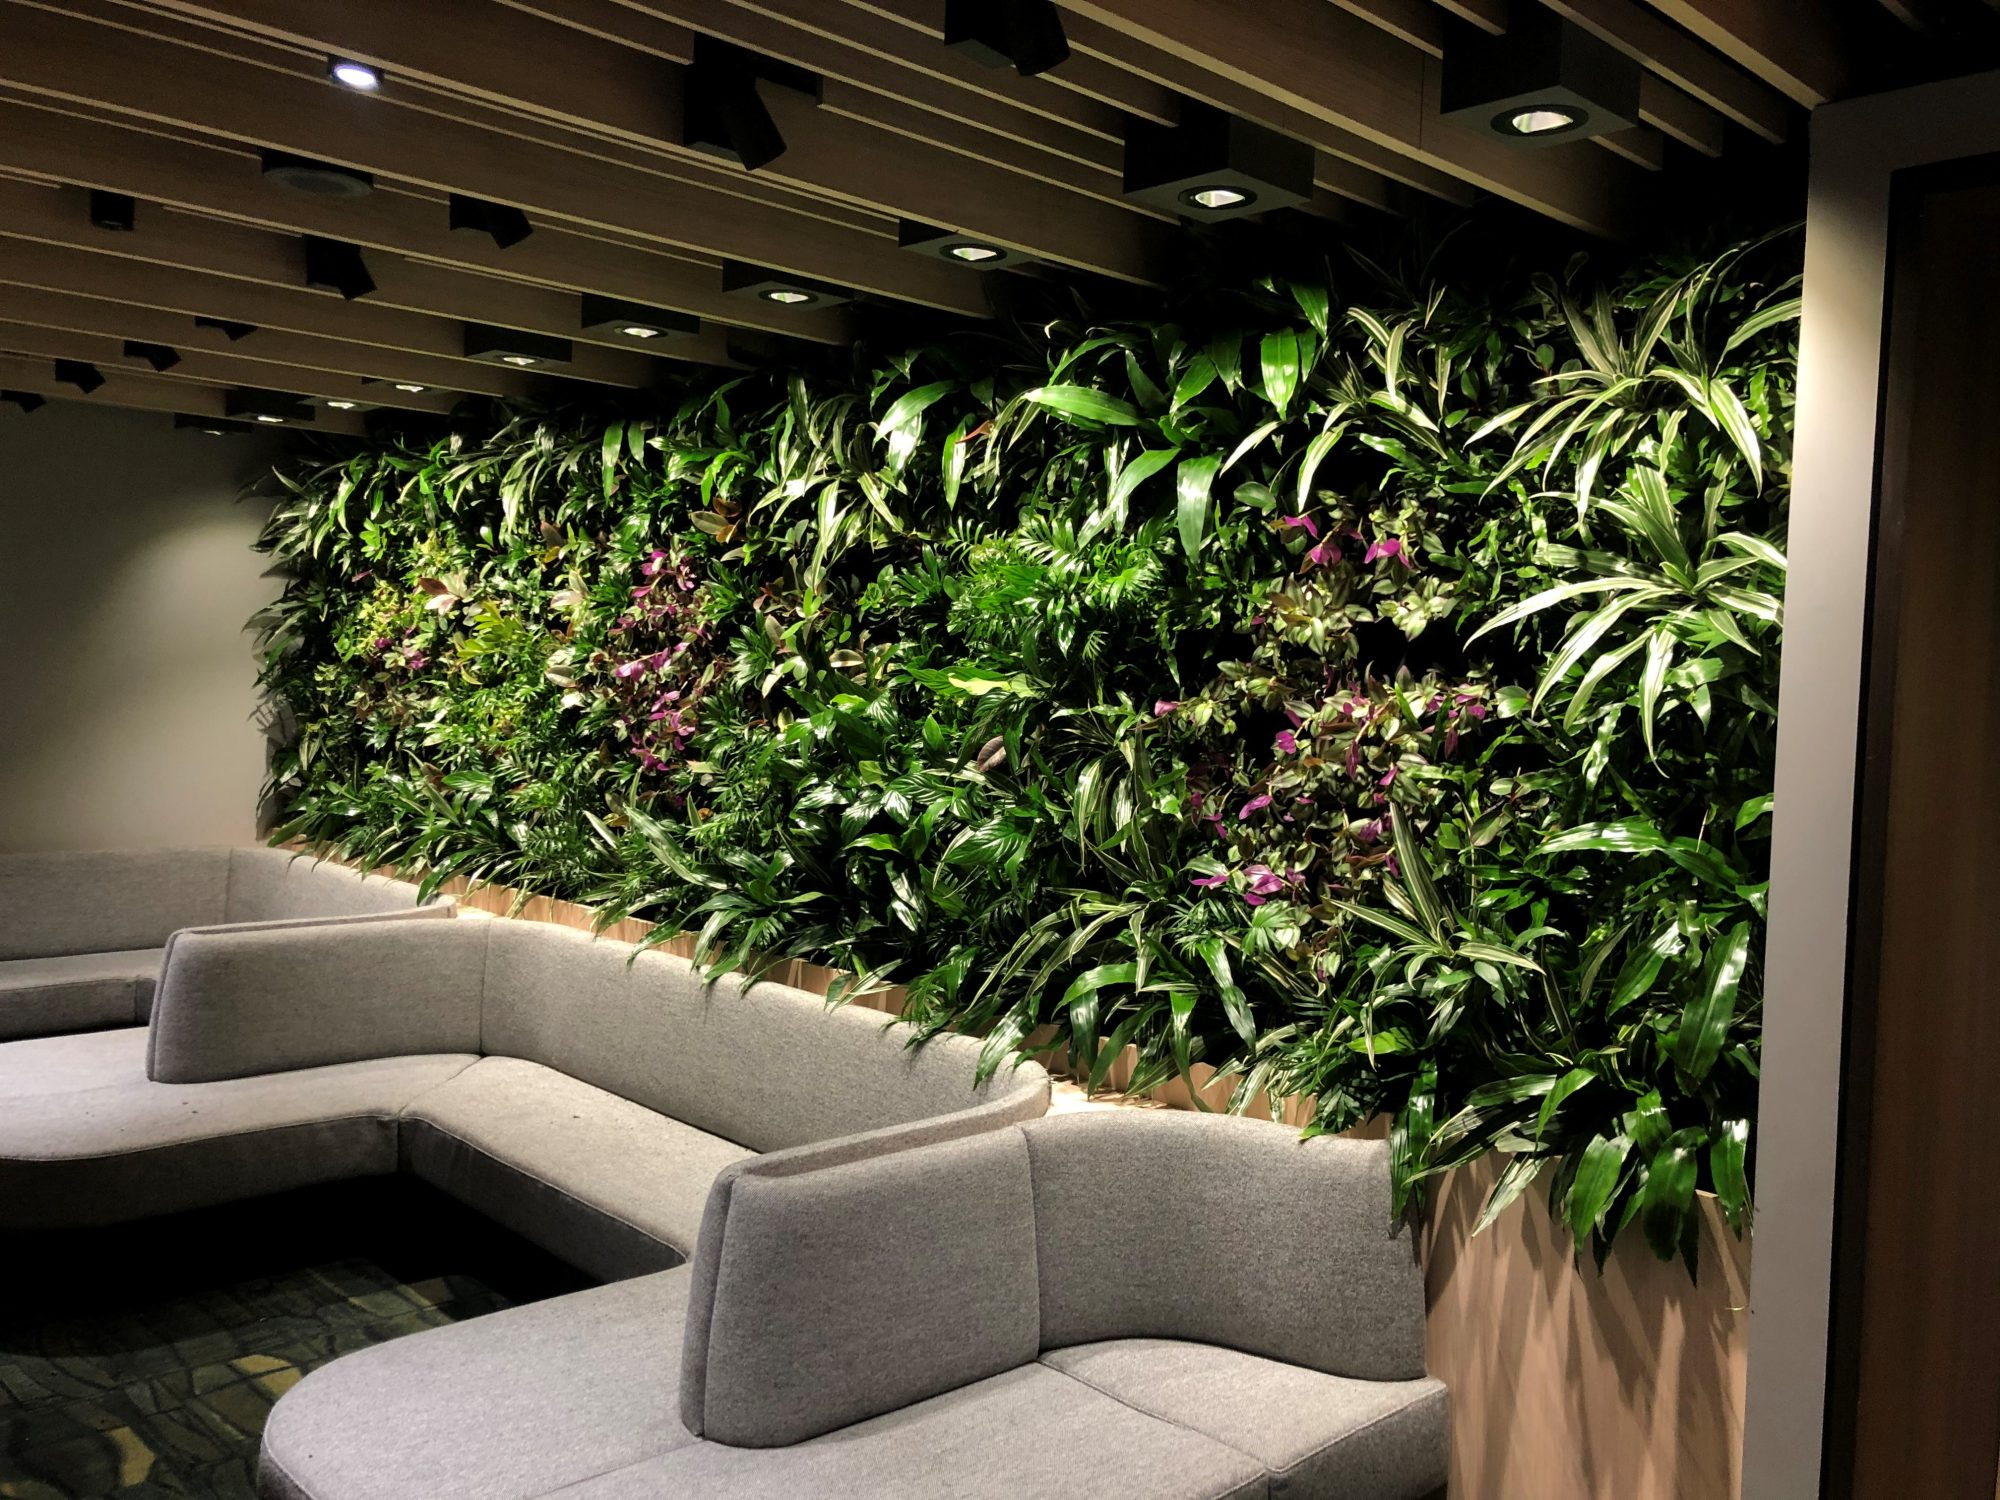 PLANTS WORKING FOR YOU…WHILE YOU WORK